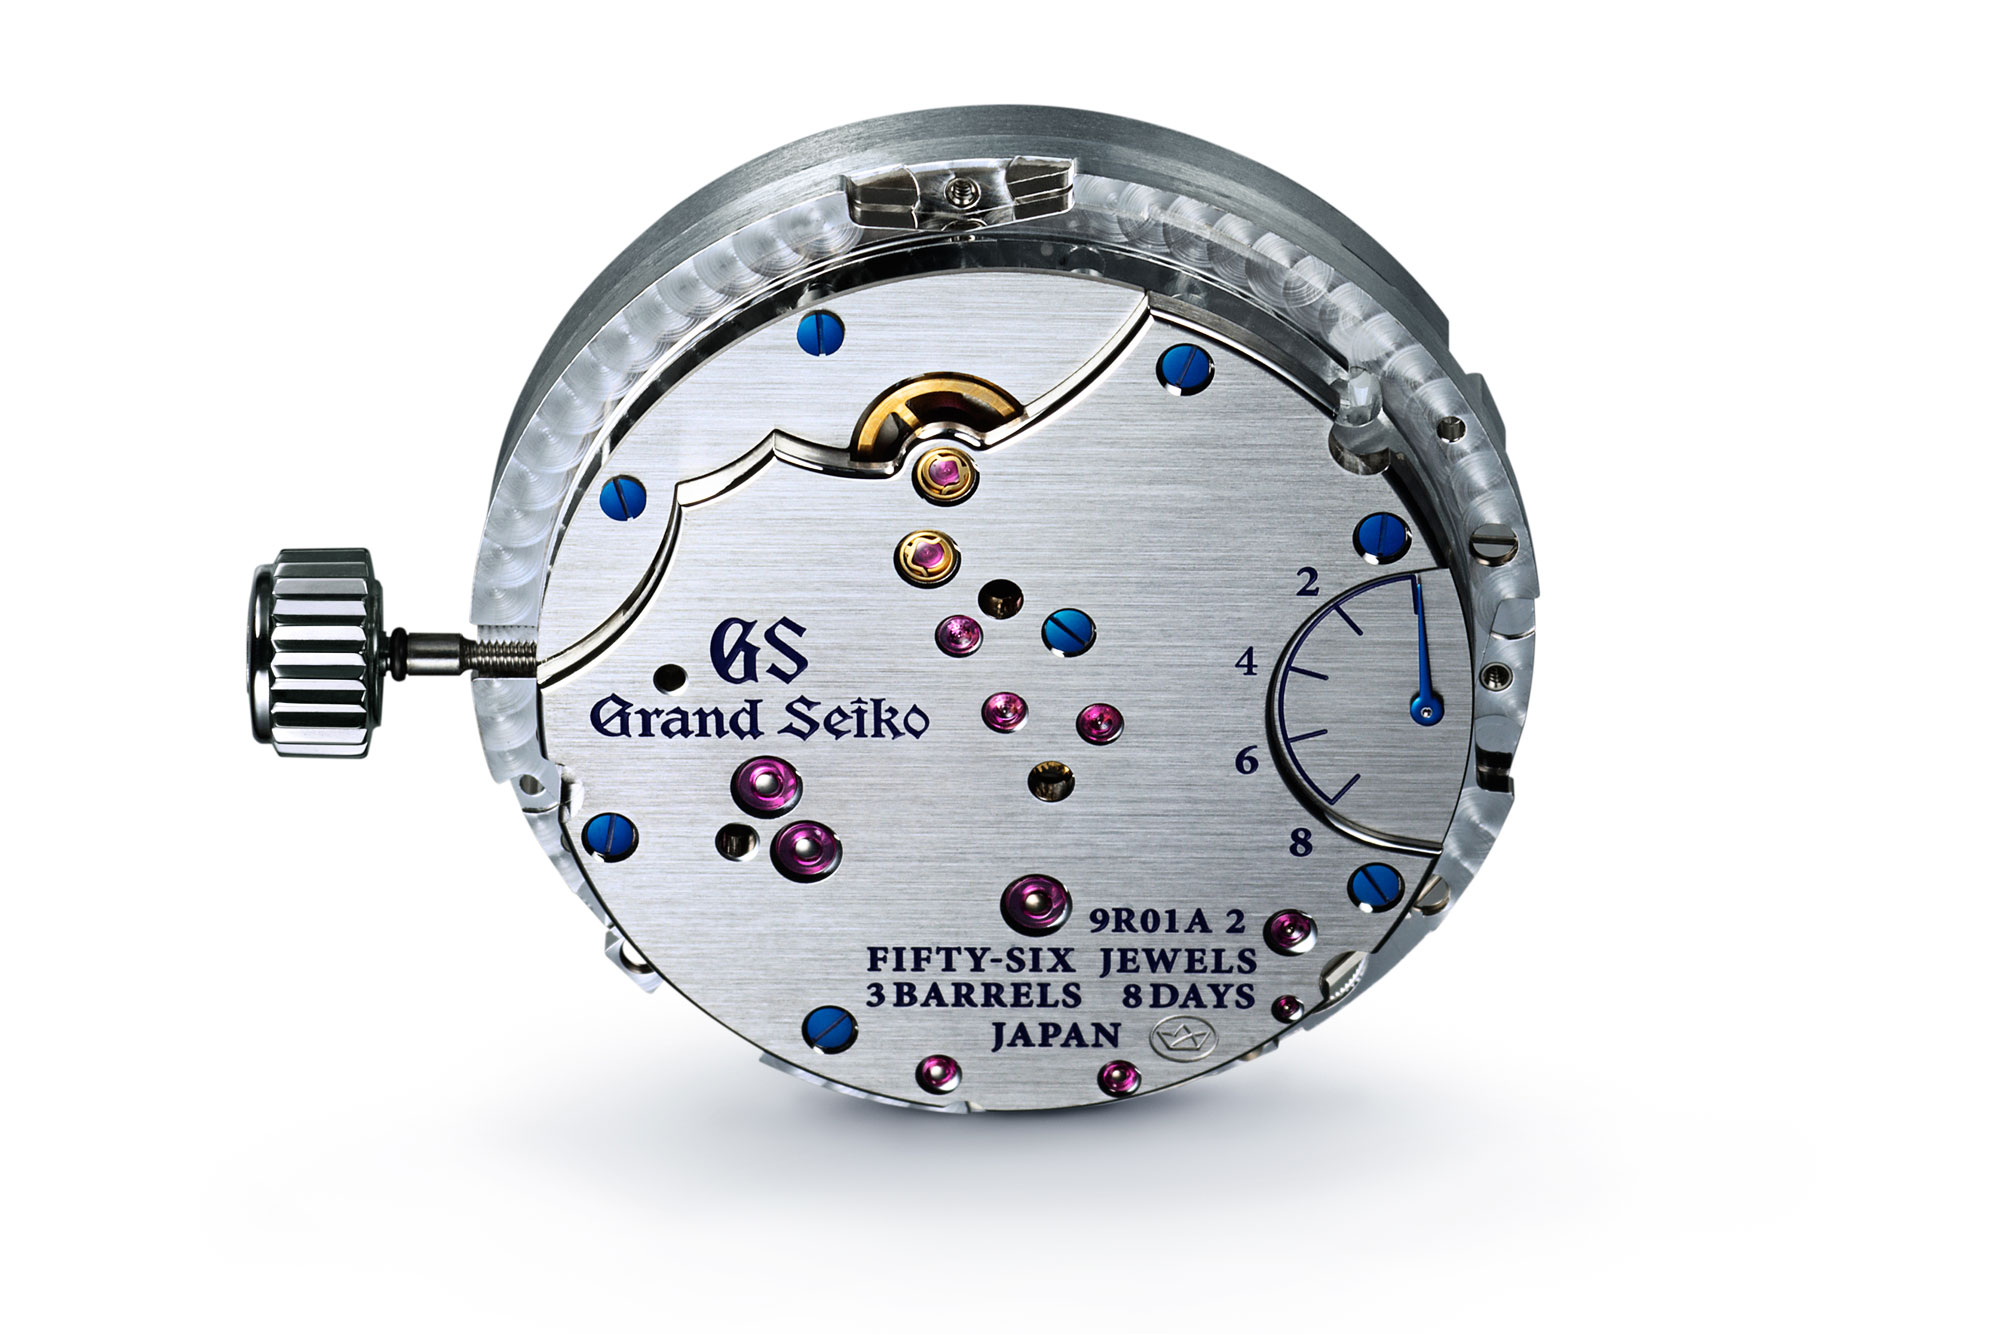 Grand Seiko 9R01 movement